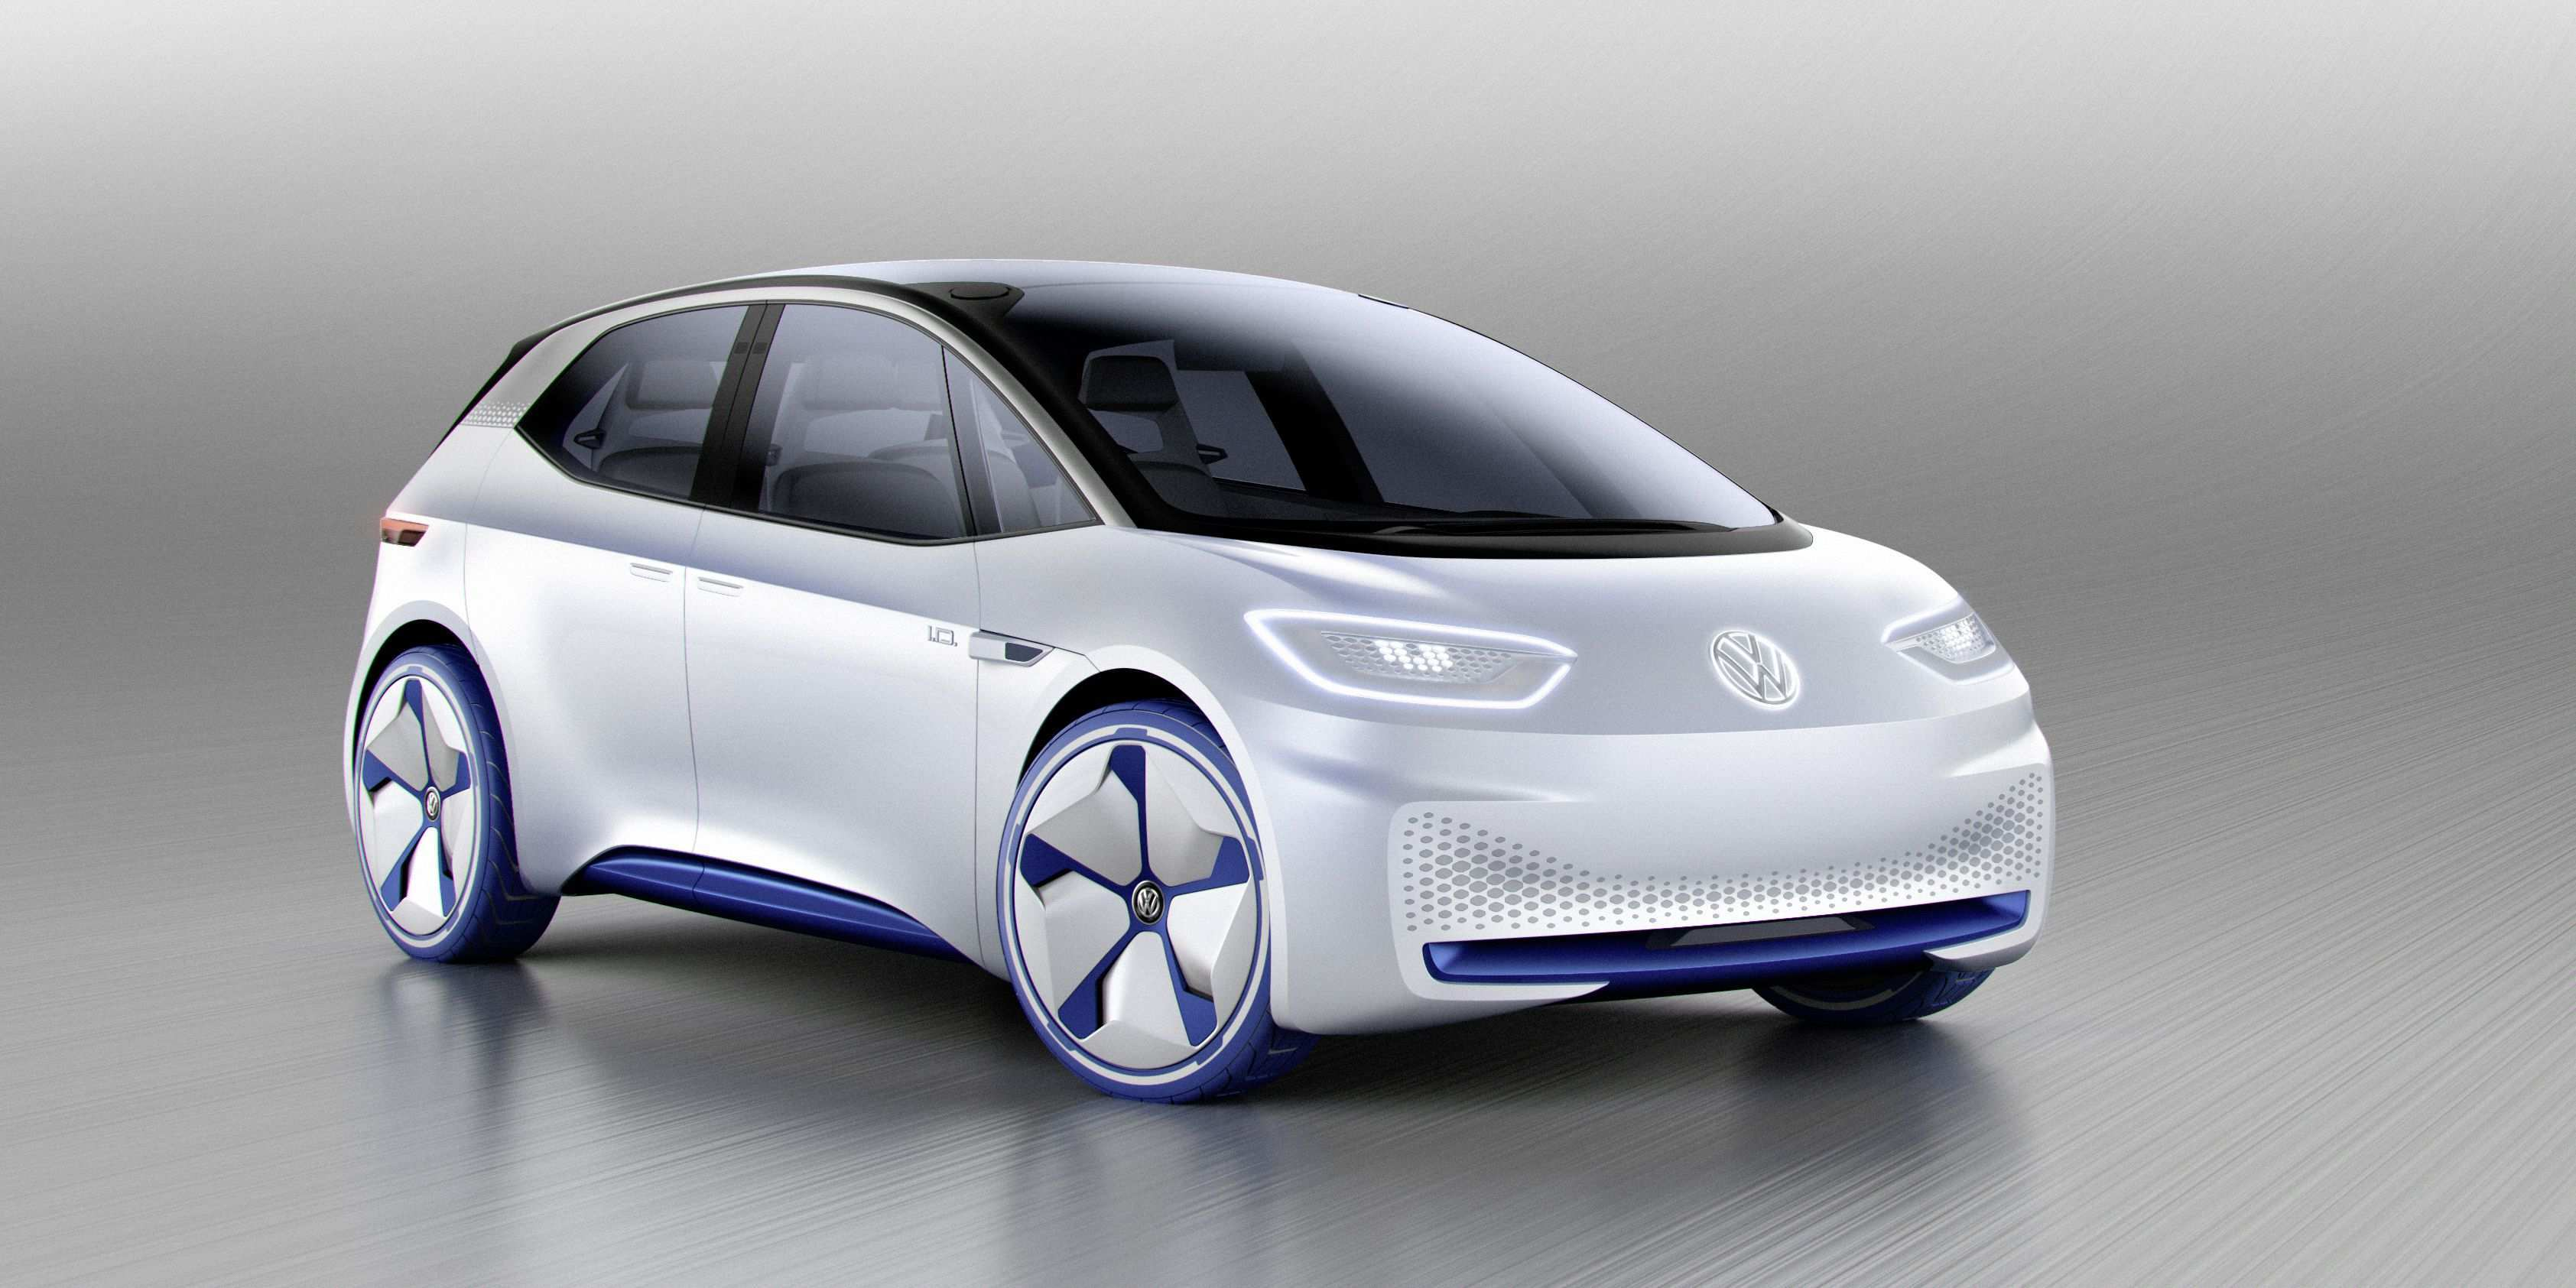 68 All New Volkswagen 2020 Concept Spy Shoot with Volkswagen 2020 Concept